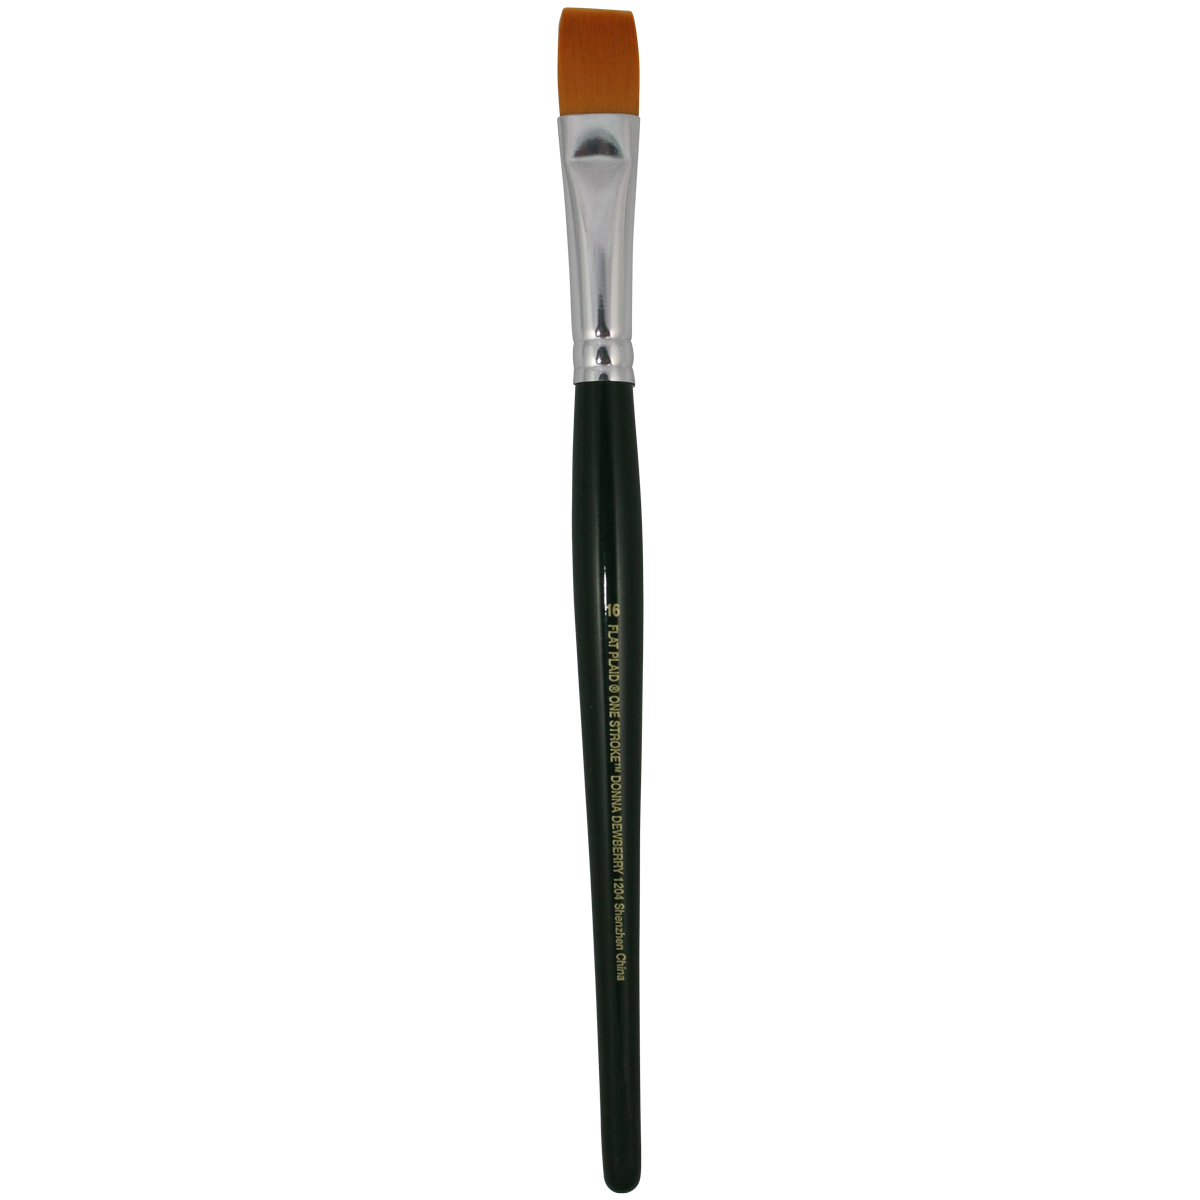 FolkArt ® One Stroke™ Brushes - Flat, #16 - 1204